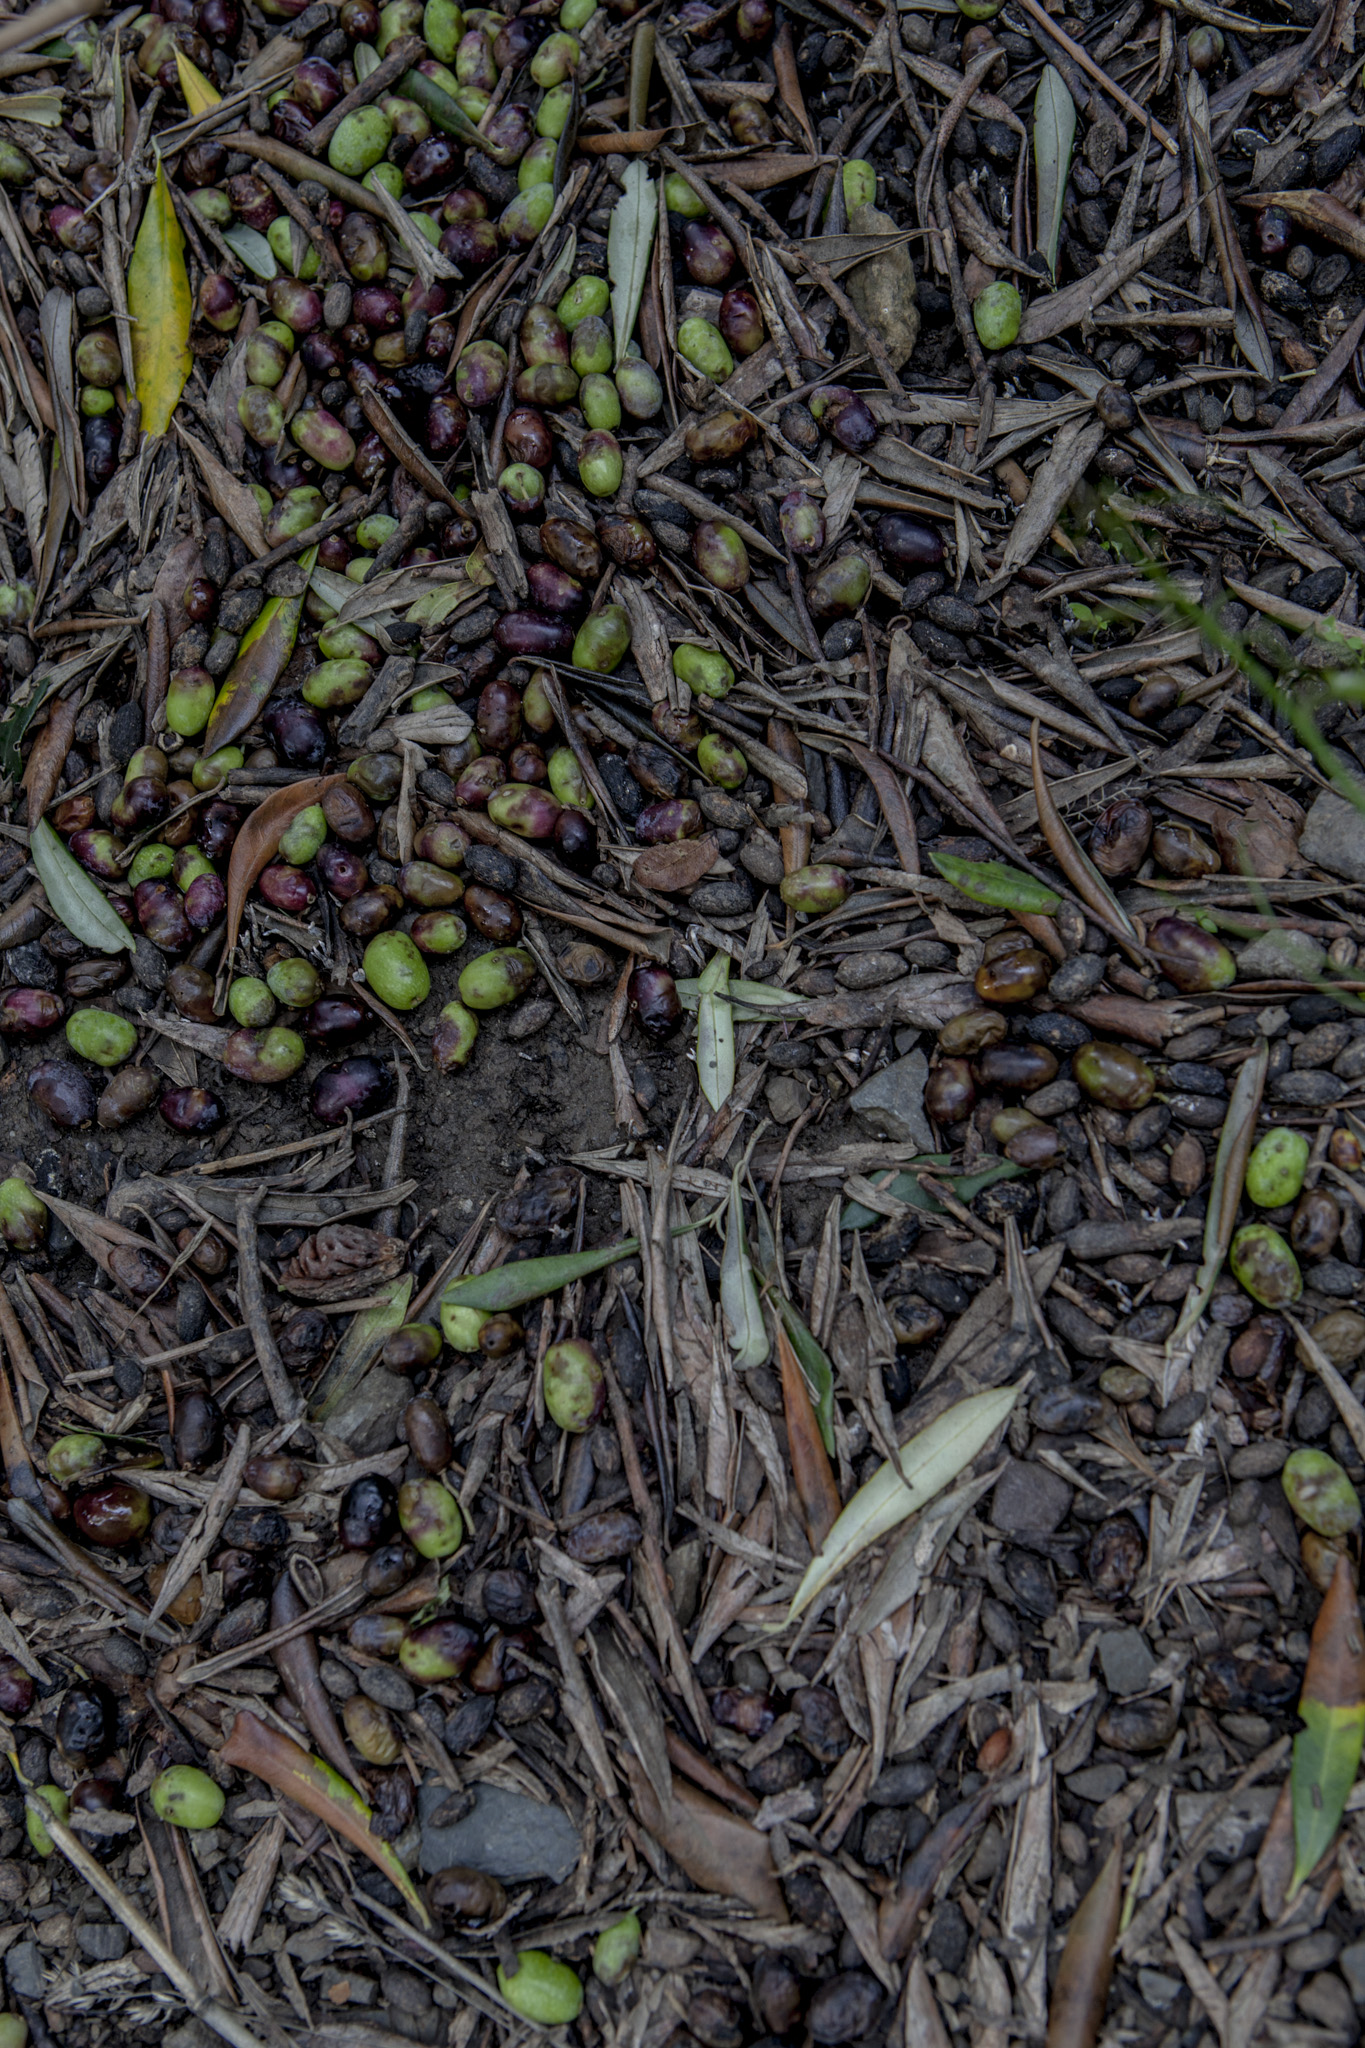 The road to paradise is paved with... olives.